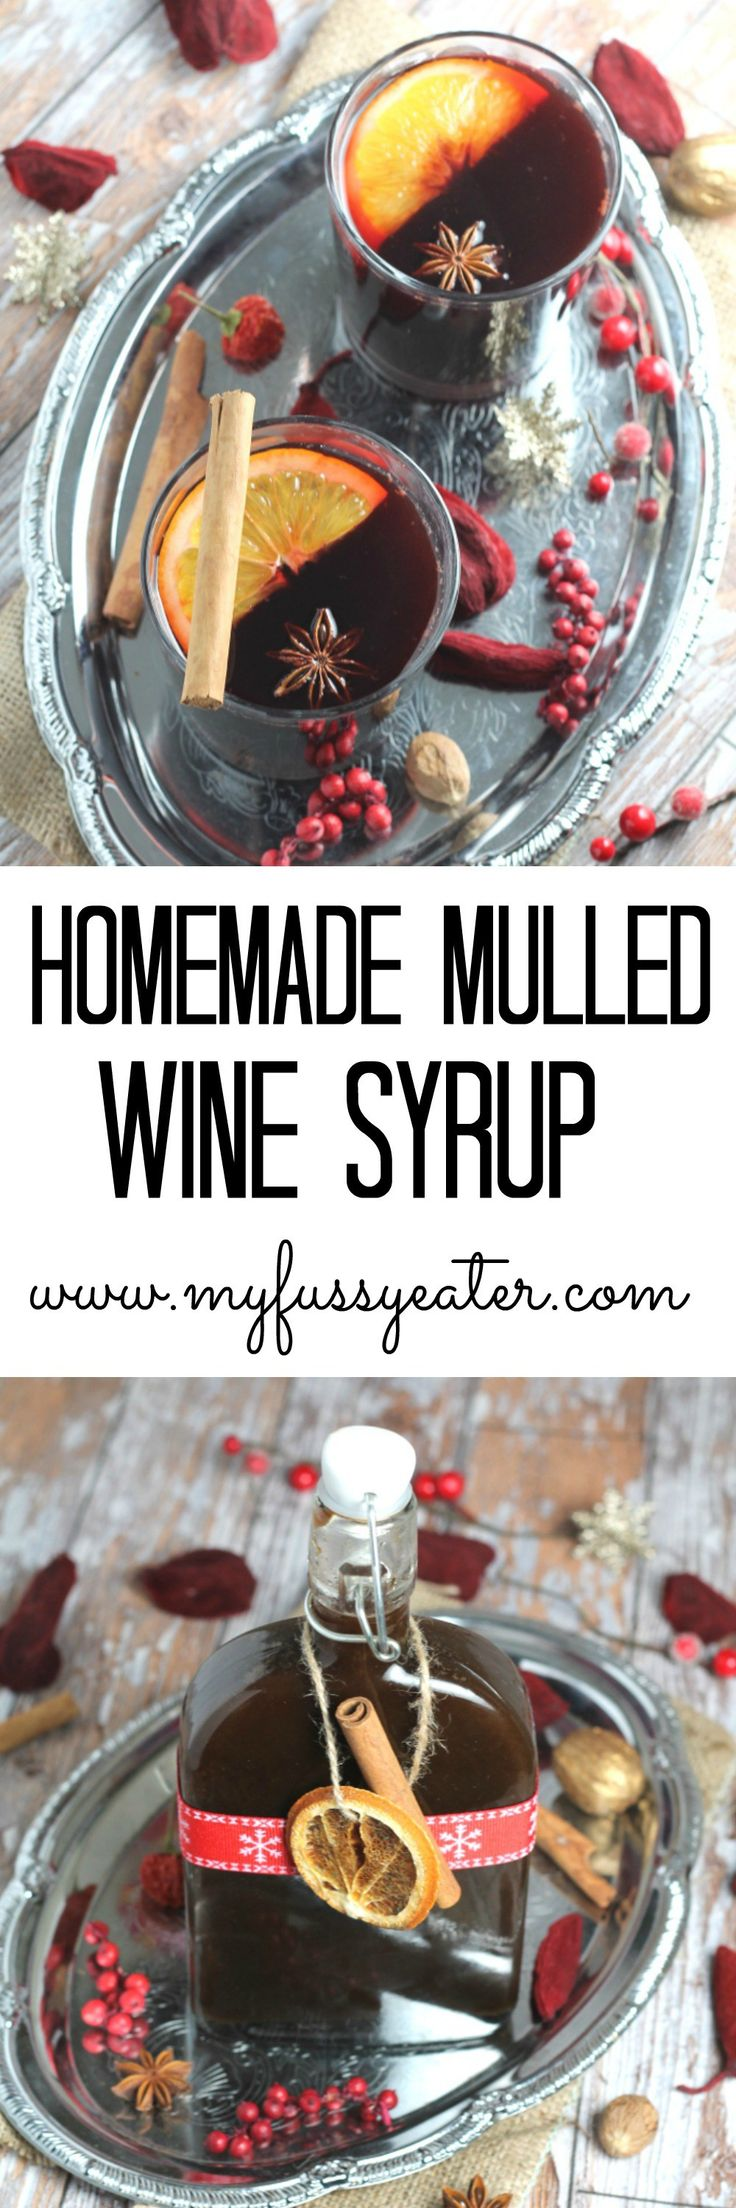 Homemade Mulled Wine Syrup